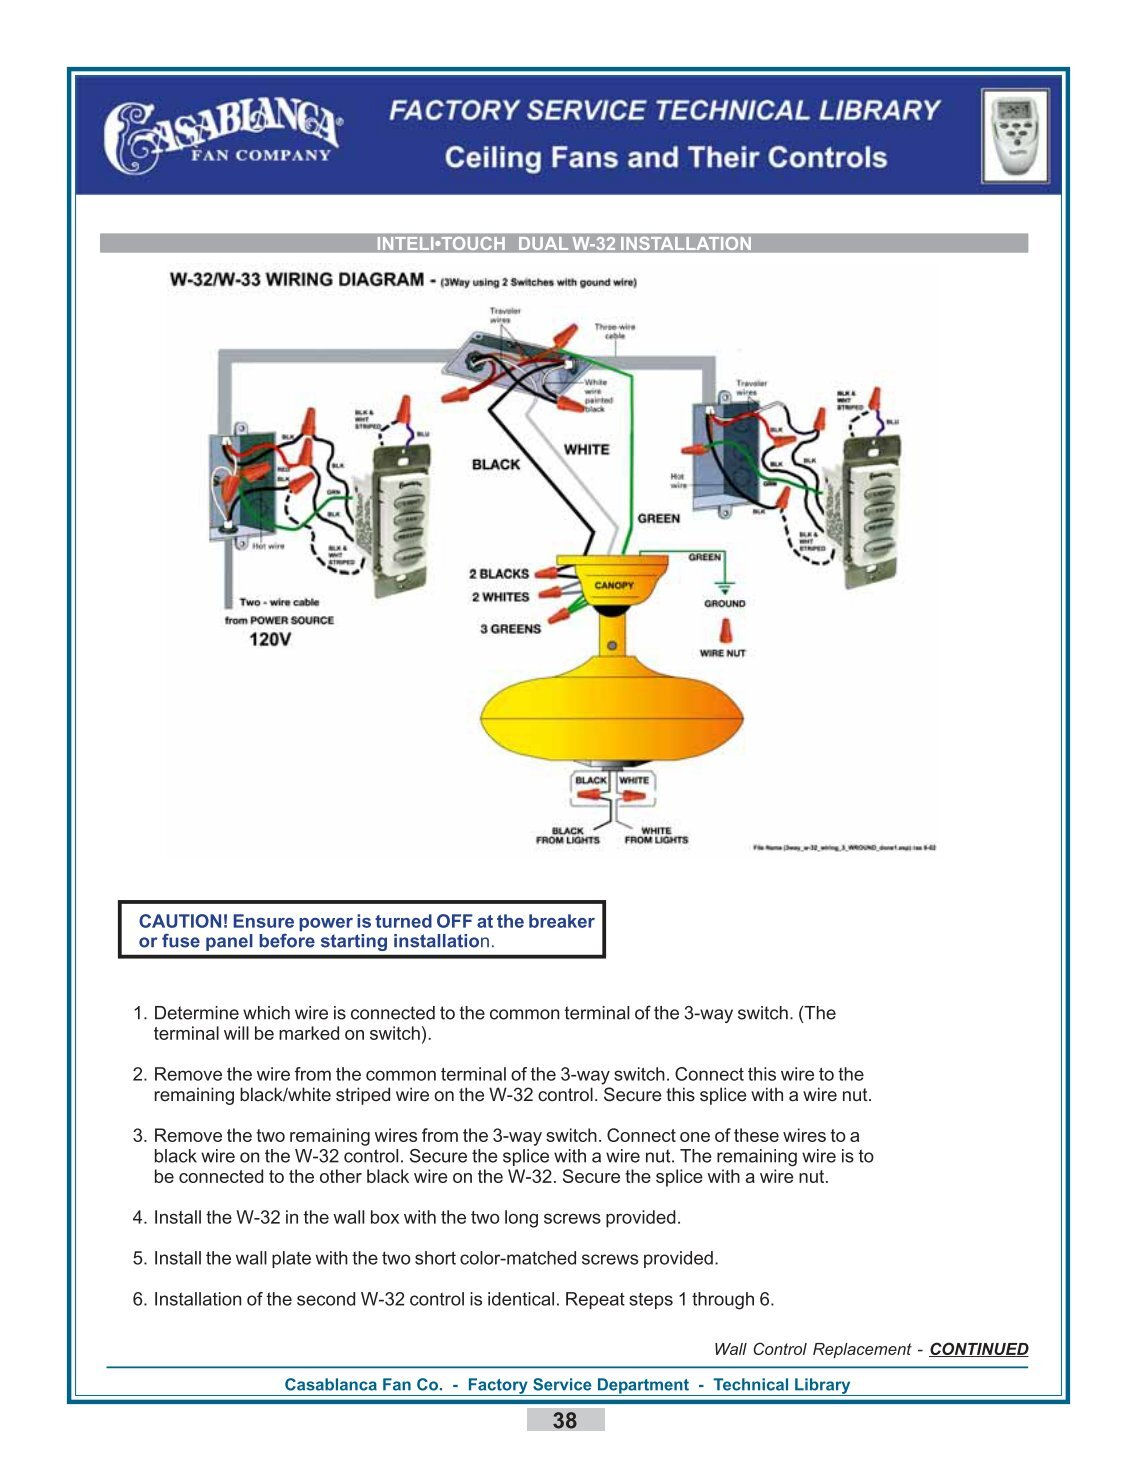 Fancy Common Terminal On 3 Way Switch Festooning - Electrical and ...